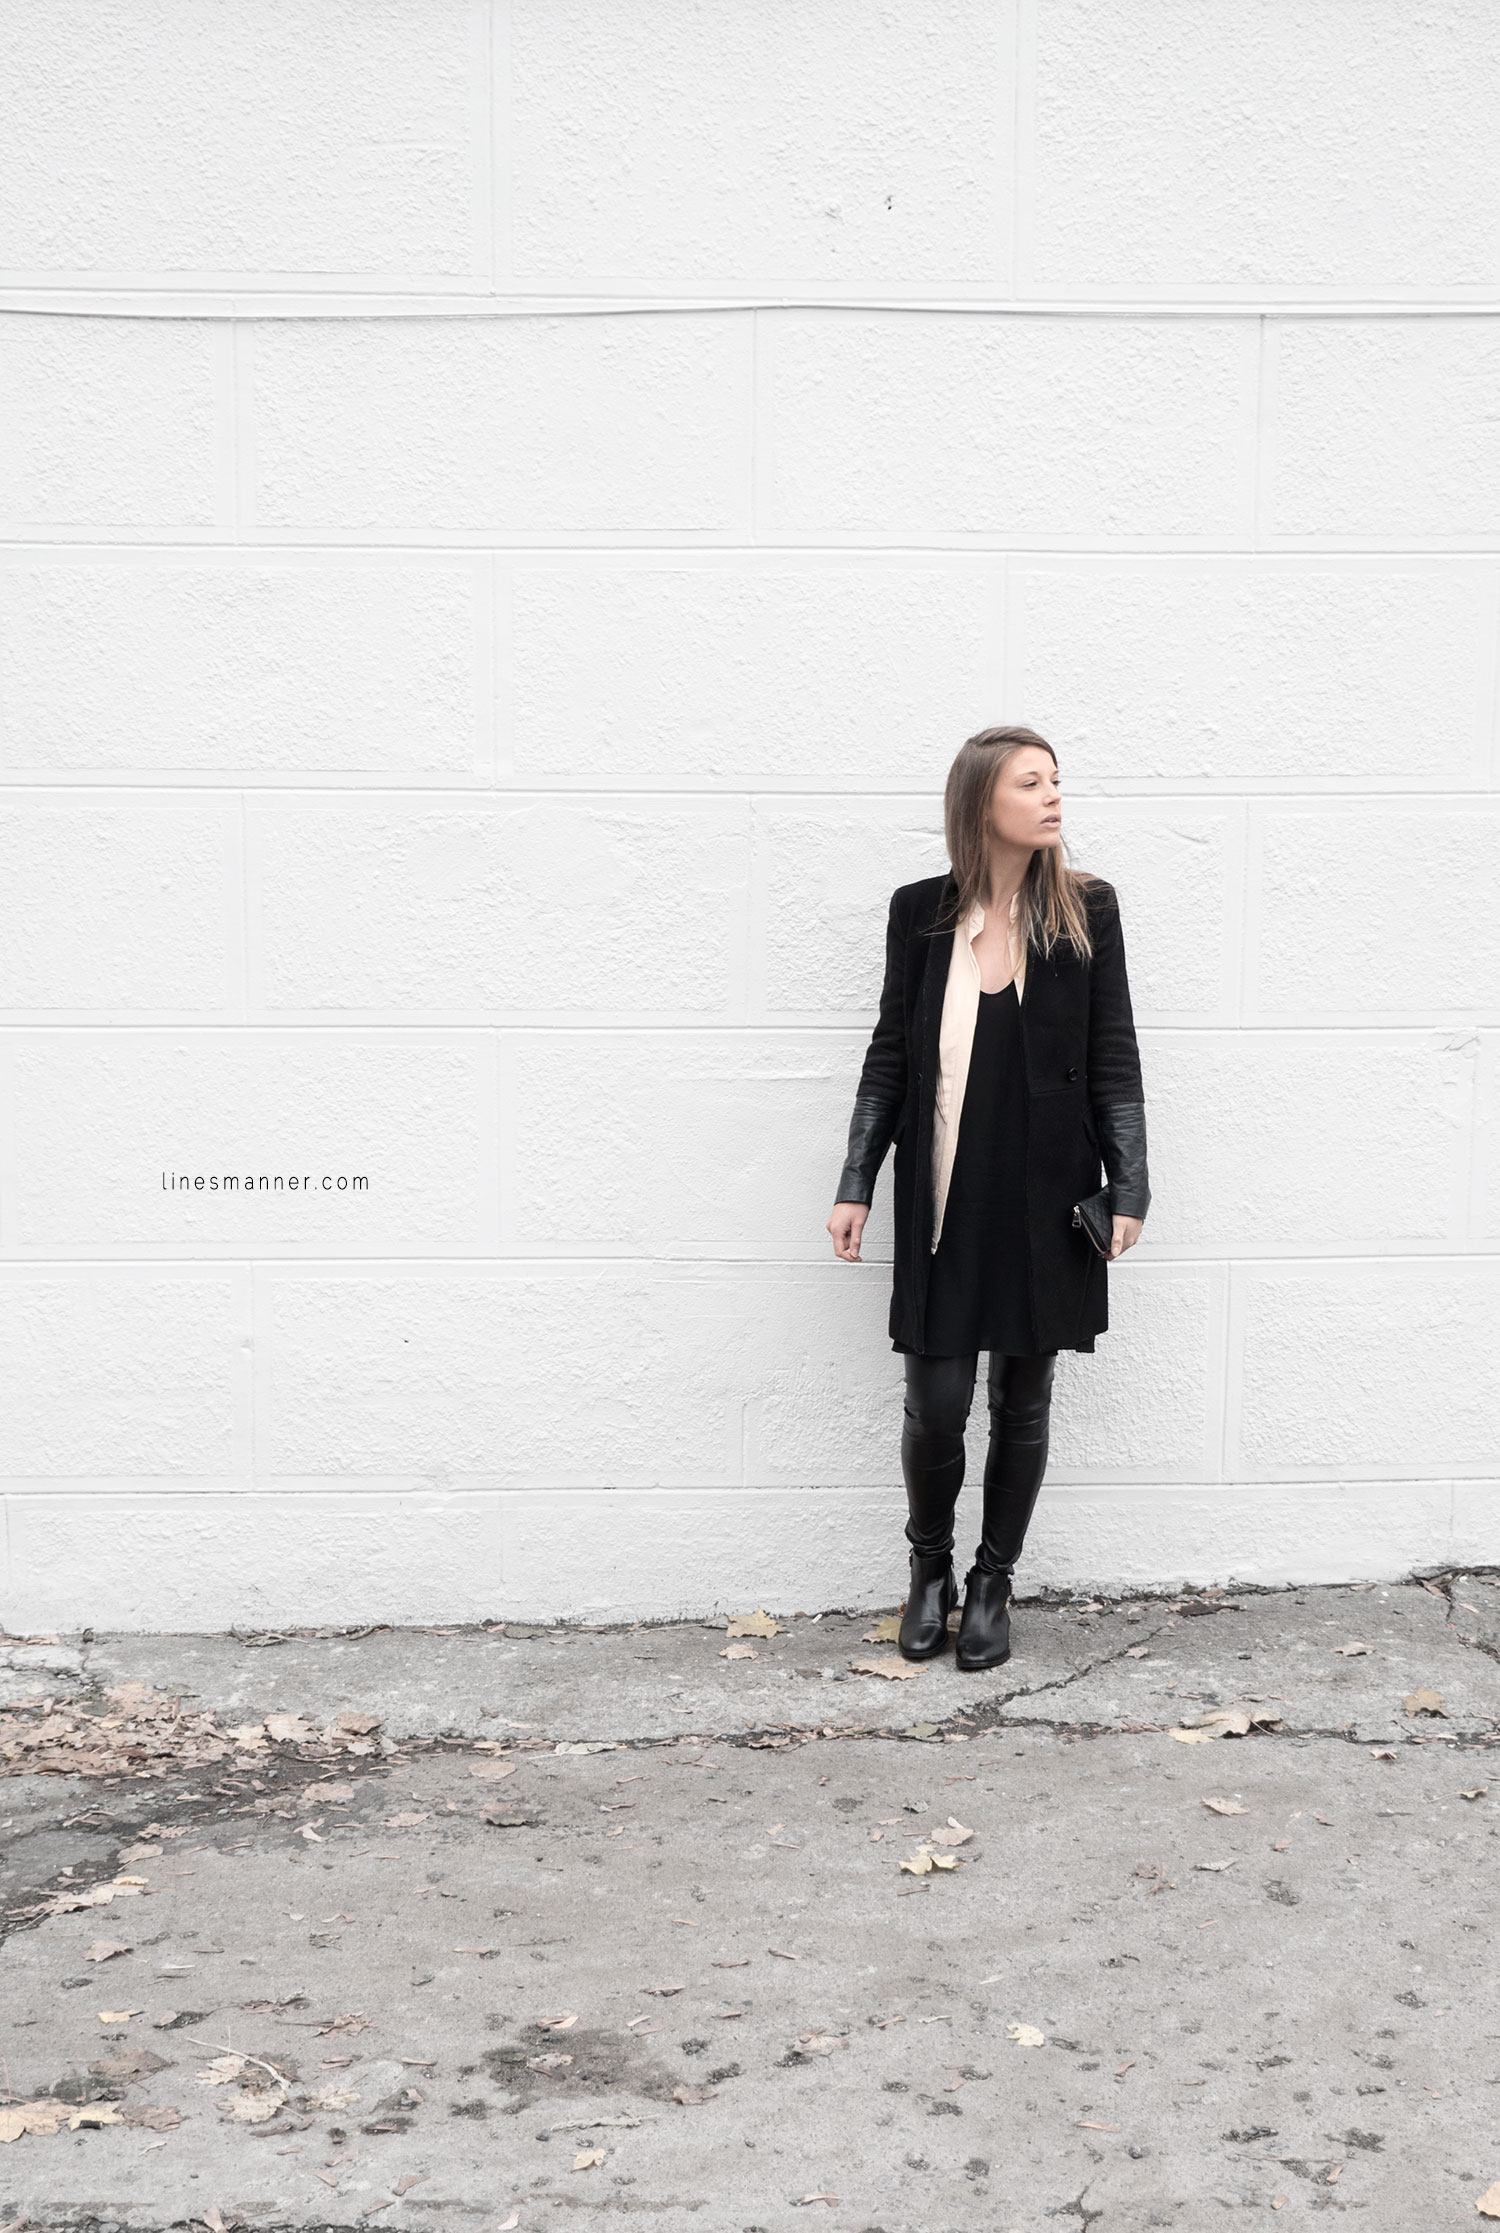 Lines-Manner-Timeless-Comfort-Essentials-Monochrome-Trend-Minimal-Textures-Fall-Leather-Details-Simplicity-Modern-Basics-Outfit-Structure-Relaxed-Leather-Luxurious-Sophistication-12